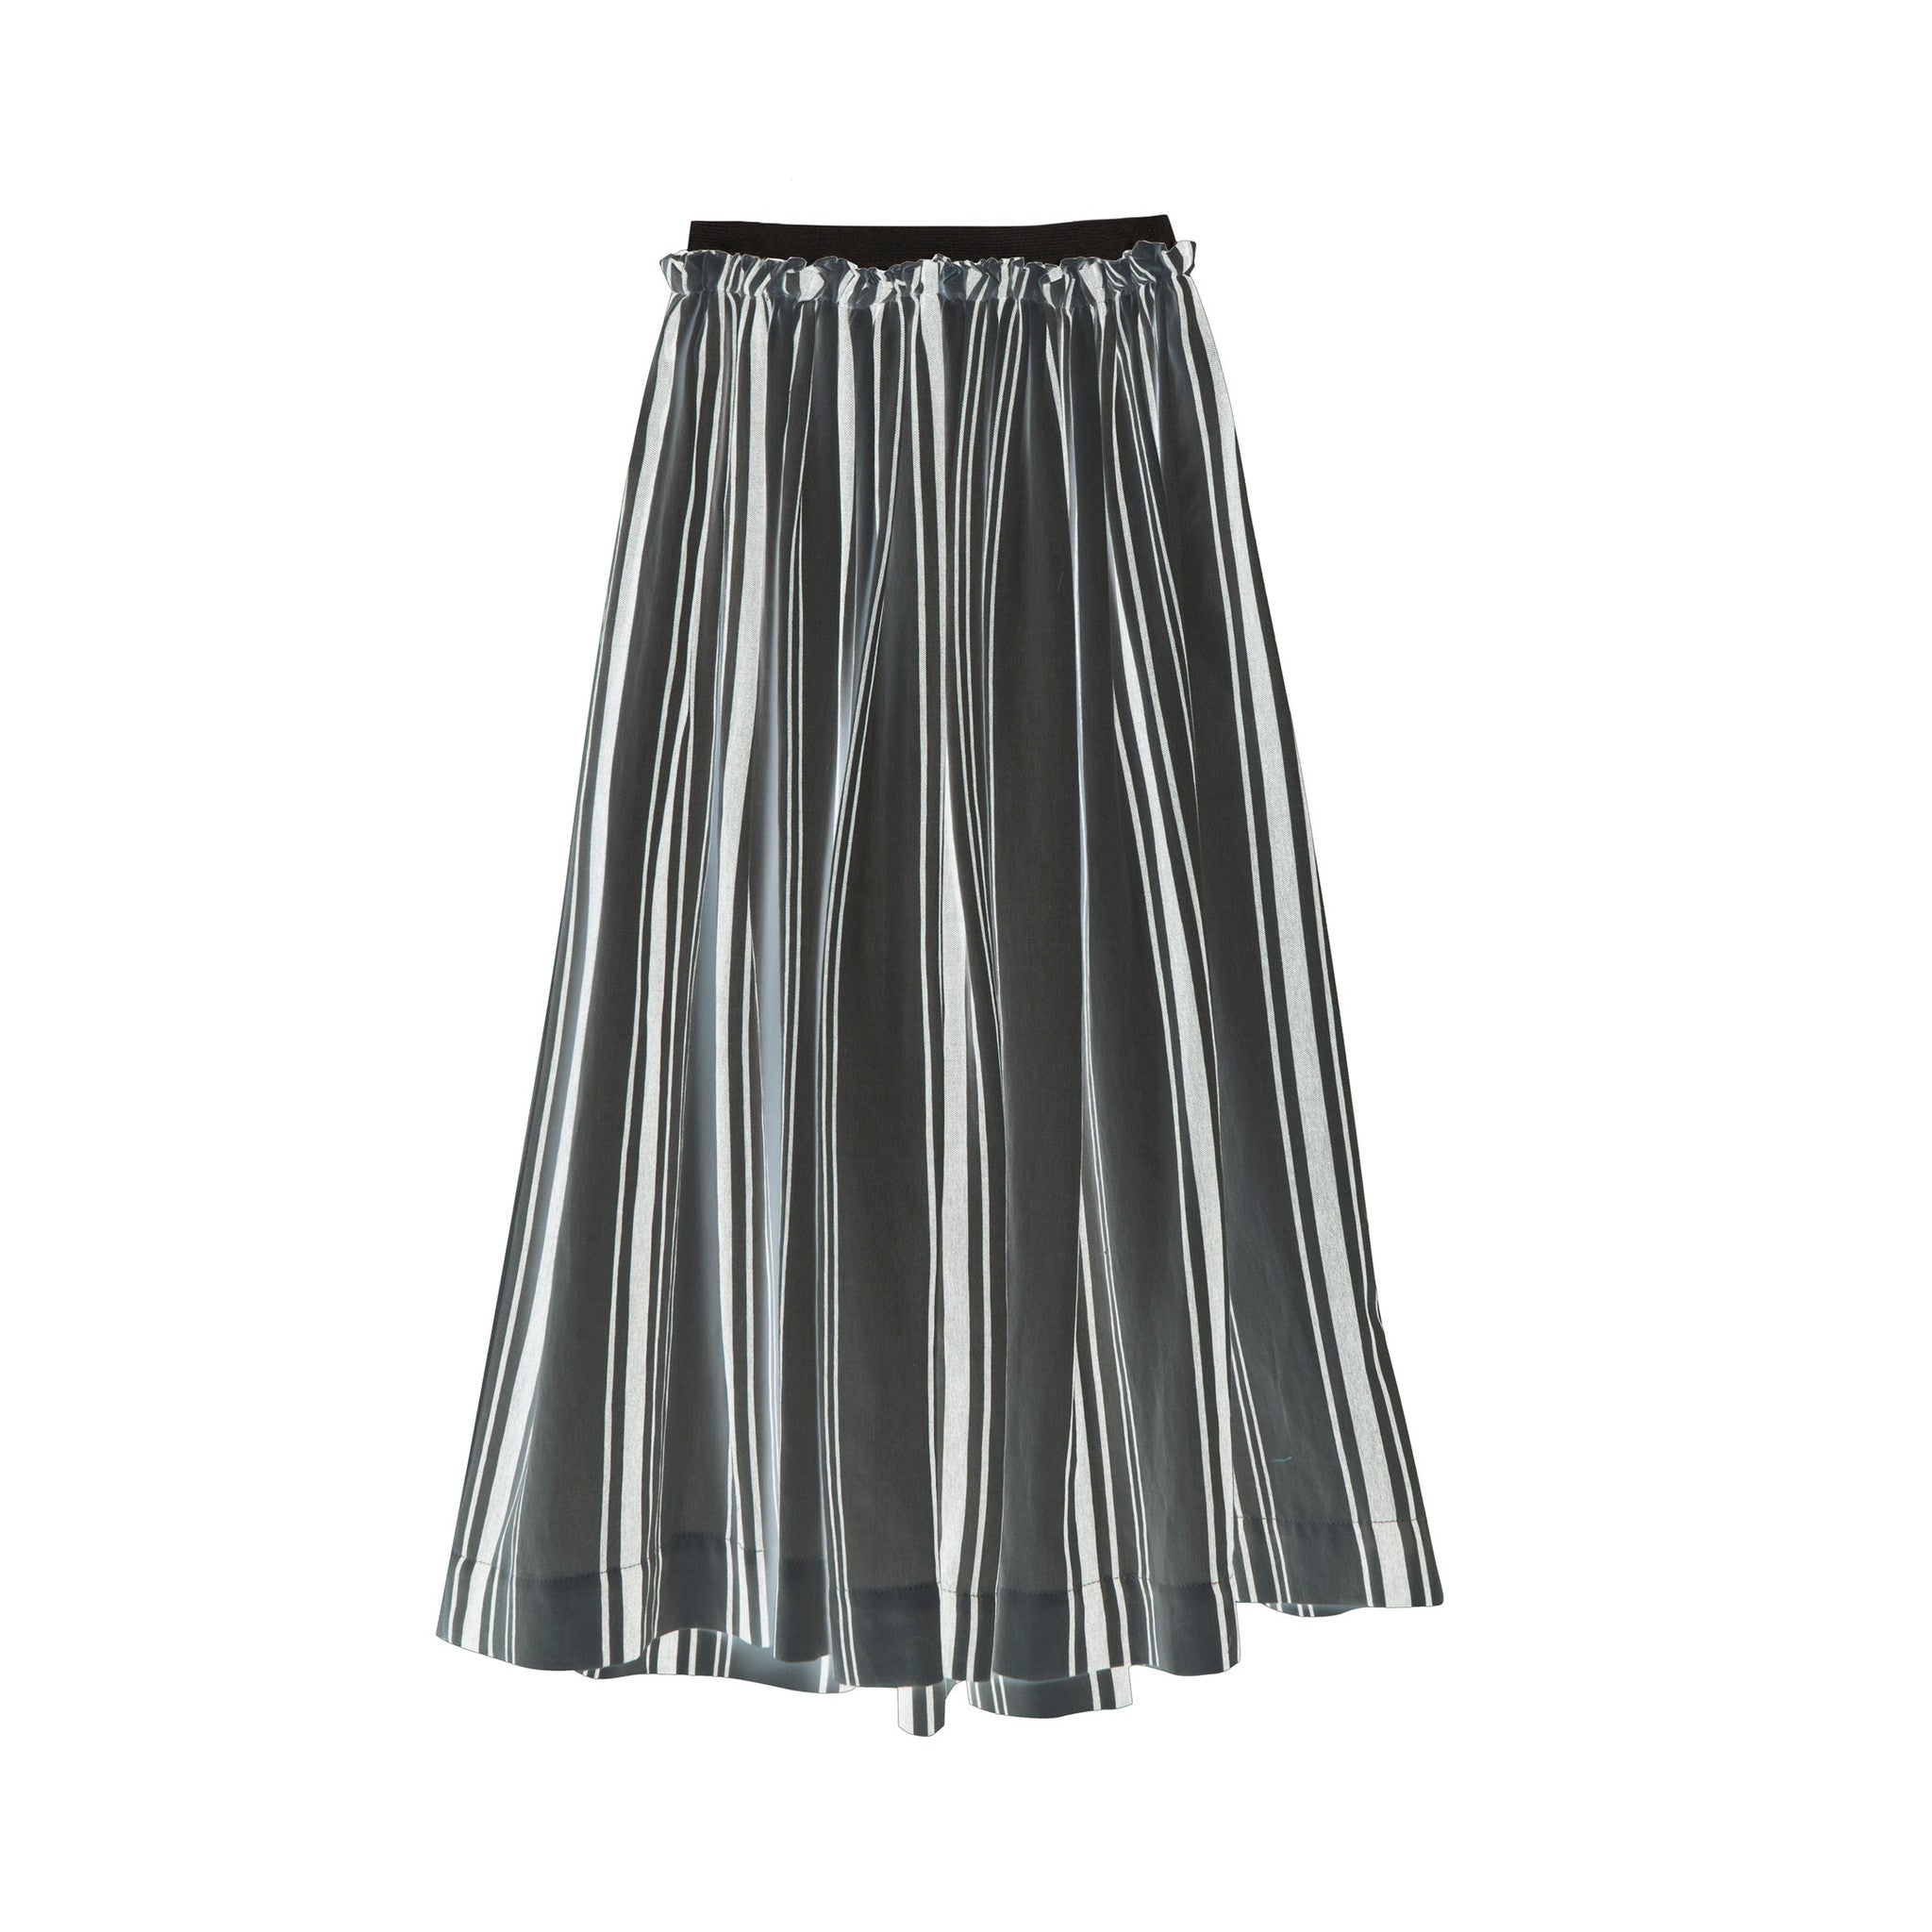 Little Creative Factory Dark Stripes Tuareg Long Skirt - Ladida